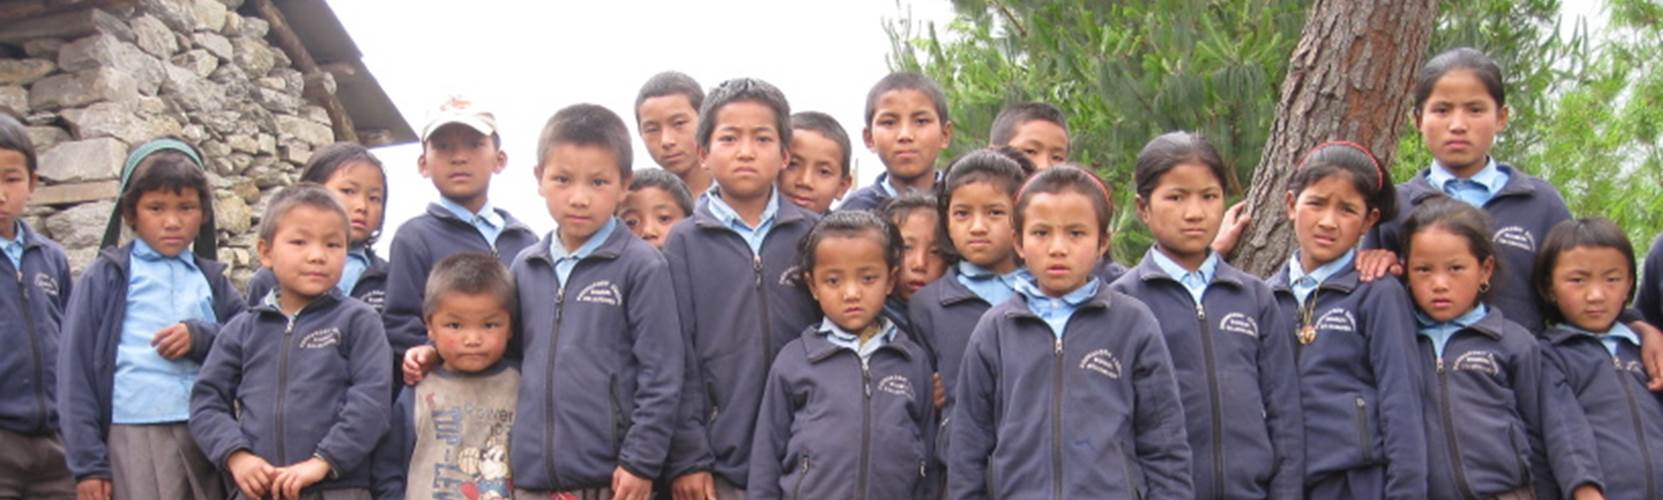 Schools in Nepal  - volunteering with Moving Mountains